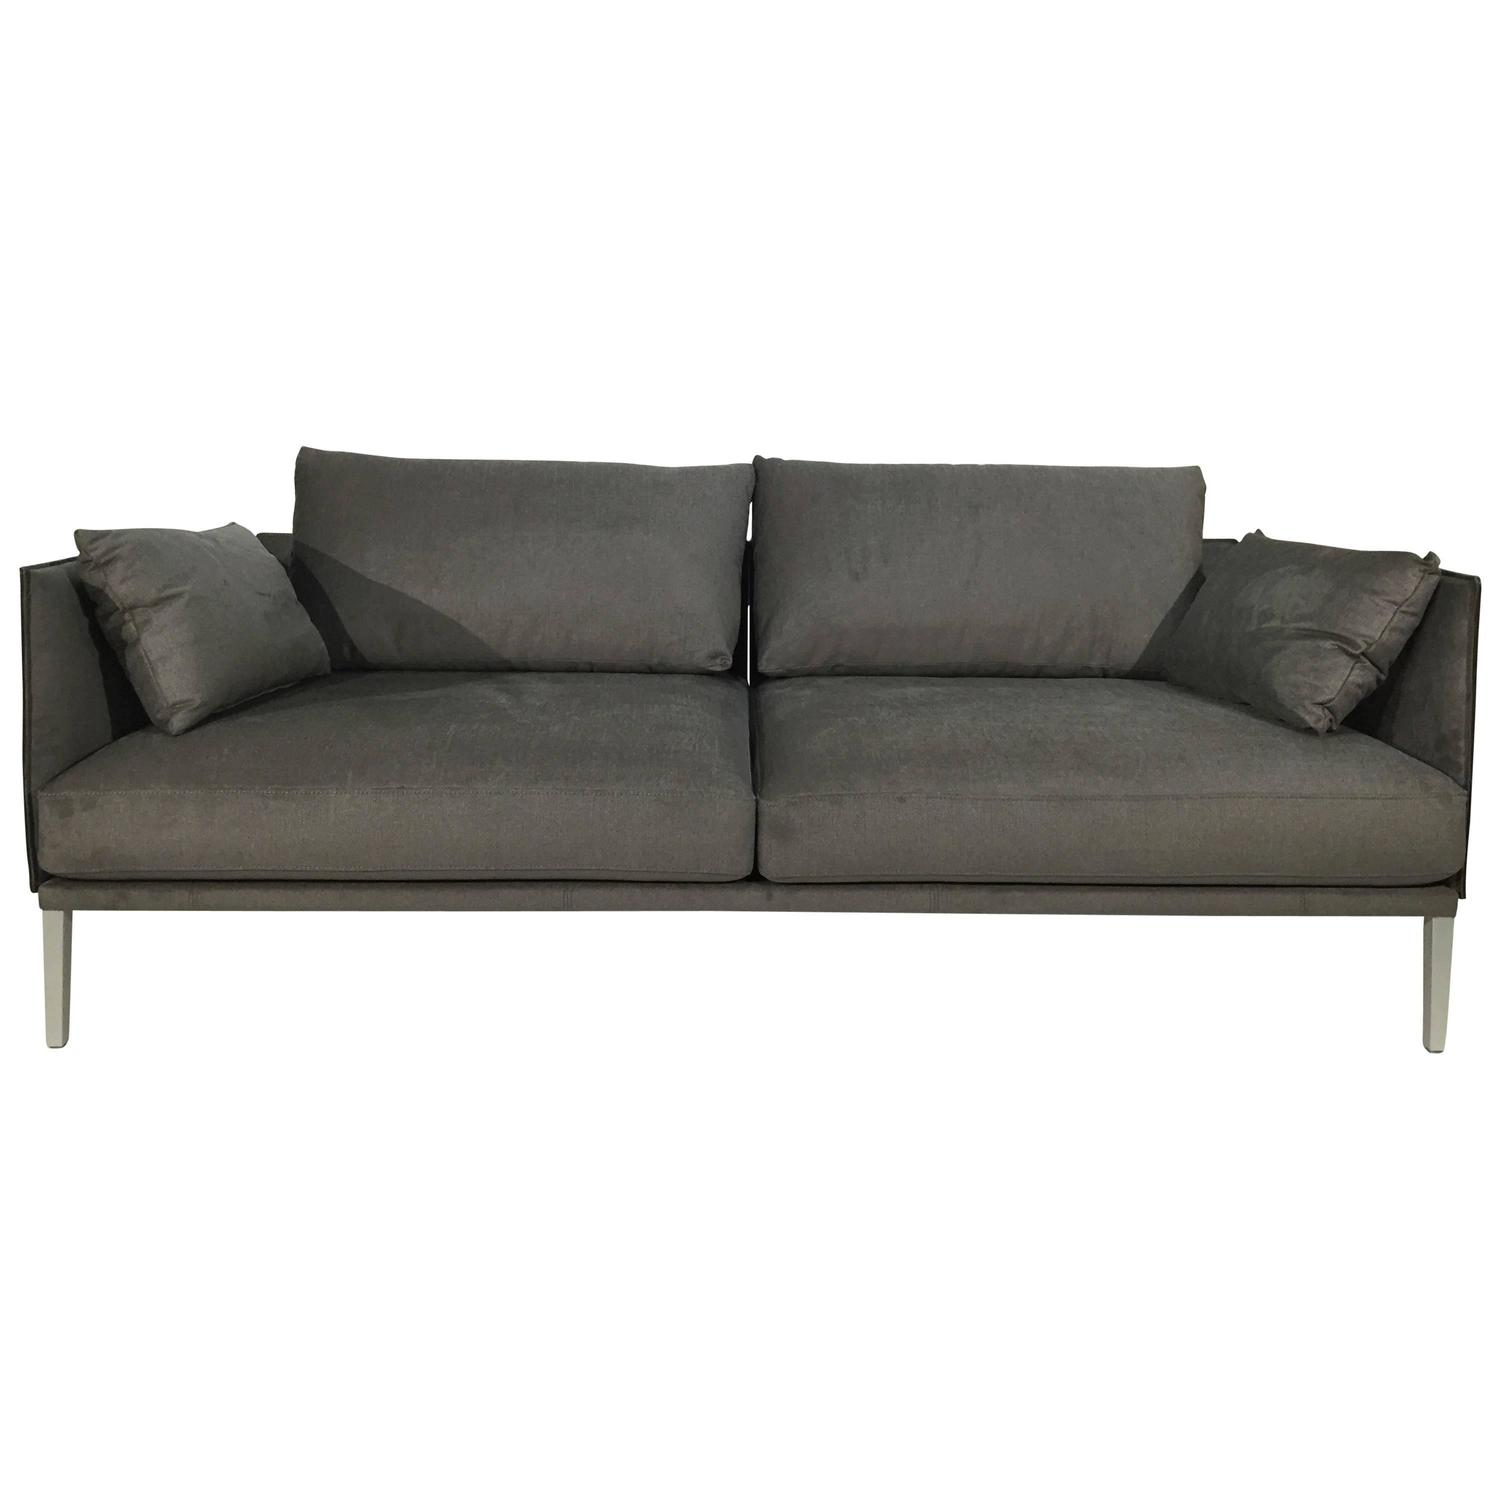 De Sede Ds 333 123 Sofa In Fabric Saddle Leather Artisano Cigarro Combo For Sale At 1stdibs